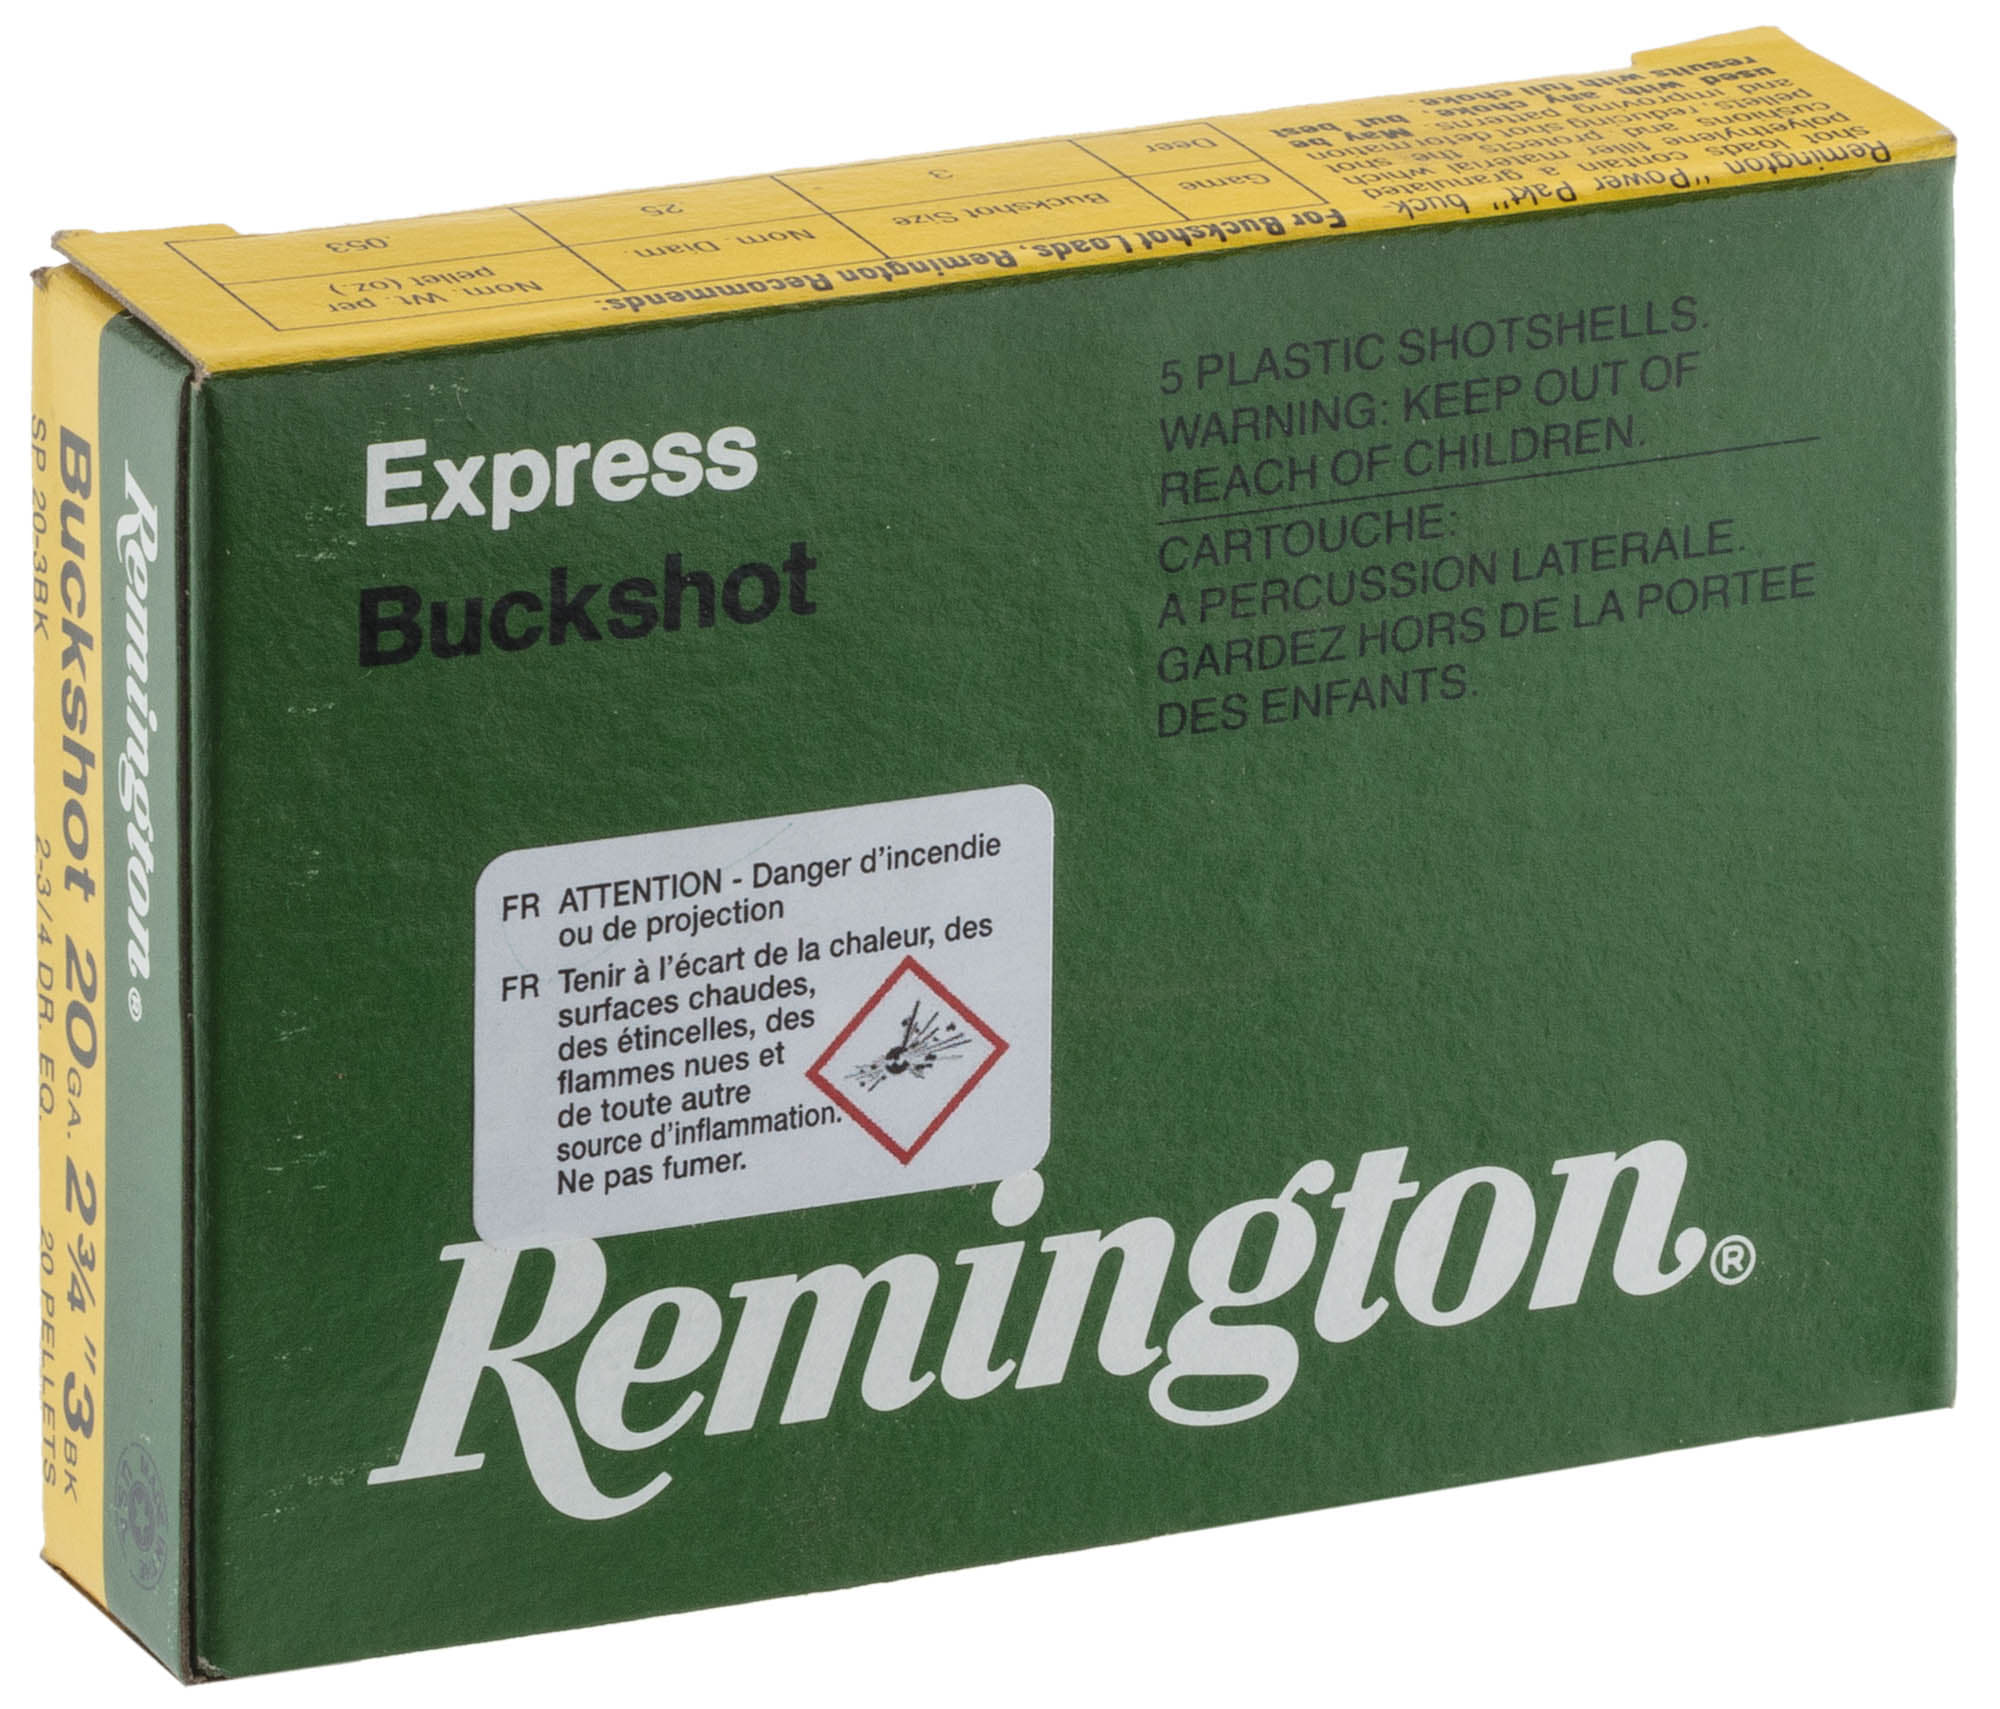 RMT120-Duplica Cartouches Remington Chevrotines Cal. 20-70 - RMT120